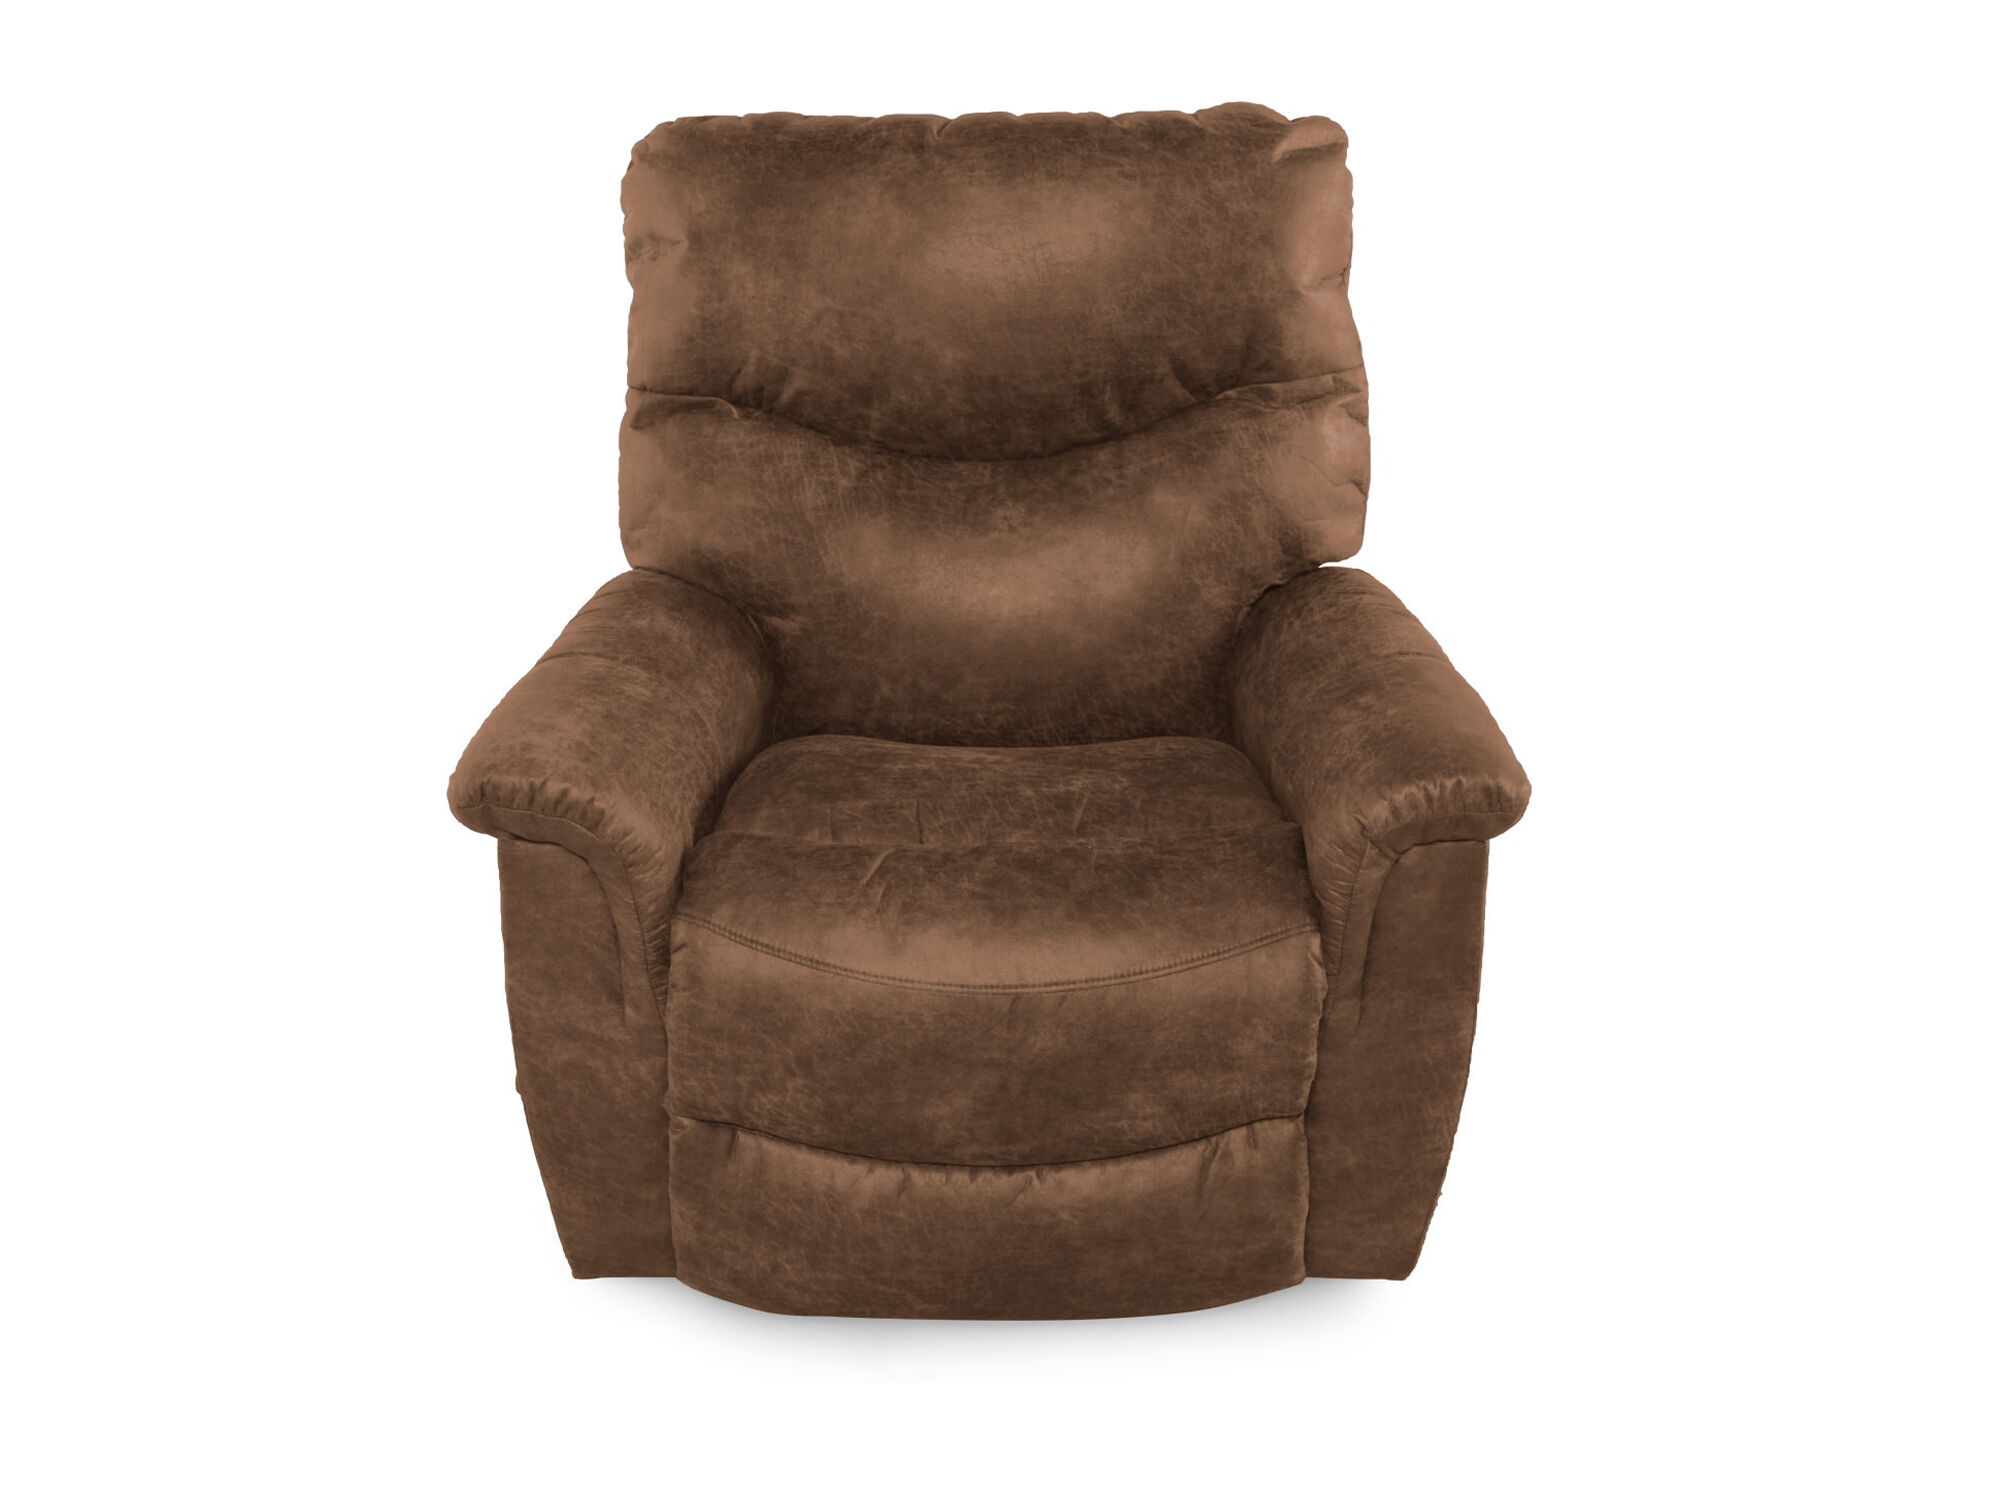 La-Z-Boy James Silt Renew Leather Recliner ...  sc 1 st  Mathis Brothers & Recliners - Reclining Chairs u0026 Sofas | Mathis Brothers islam-shia.org